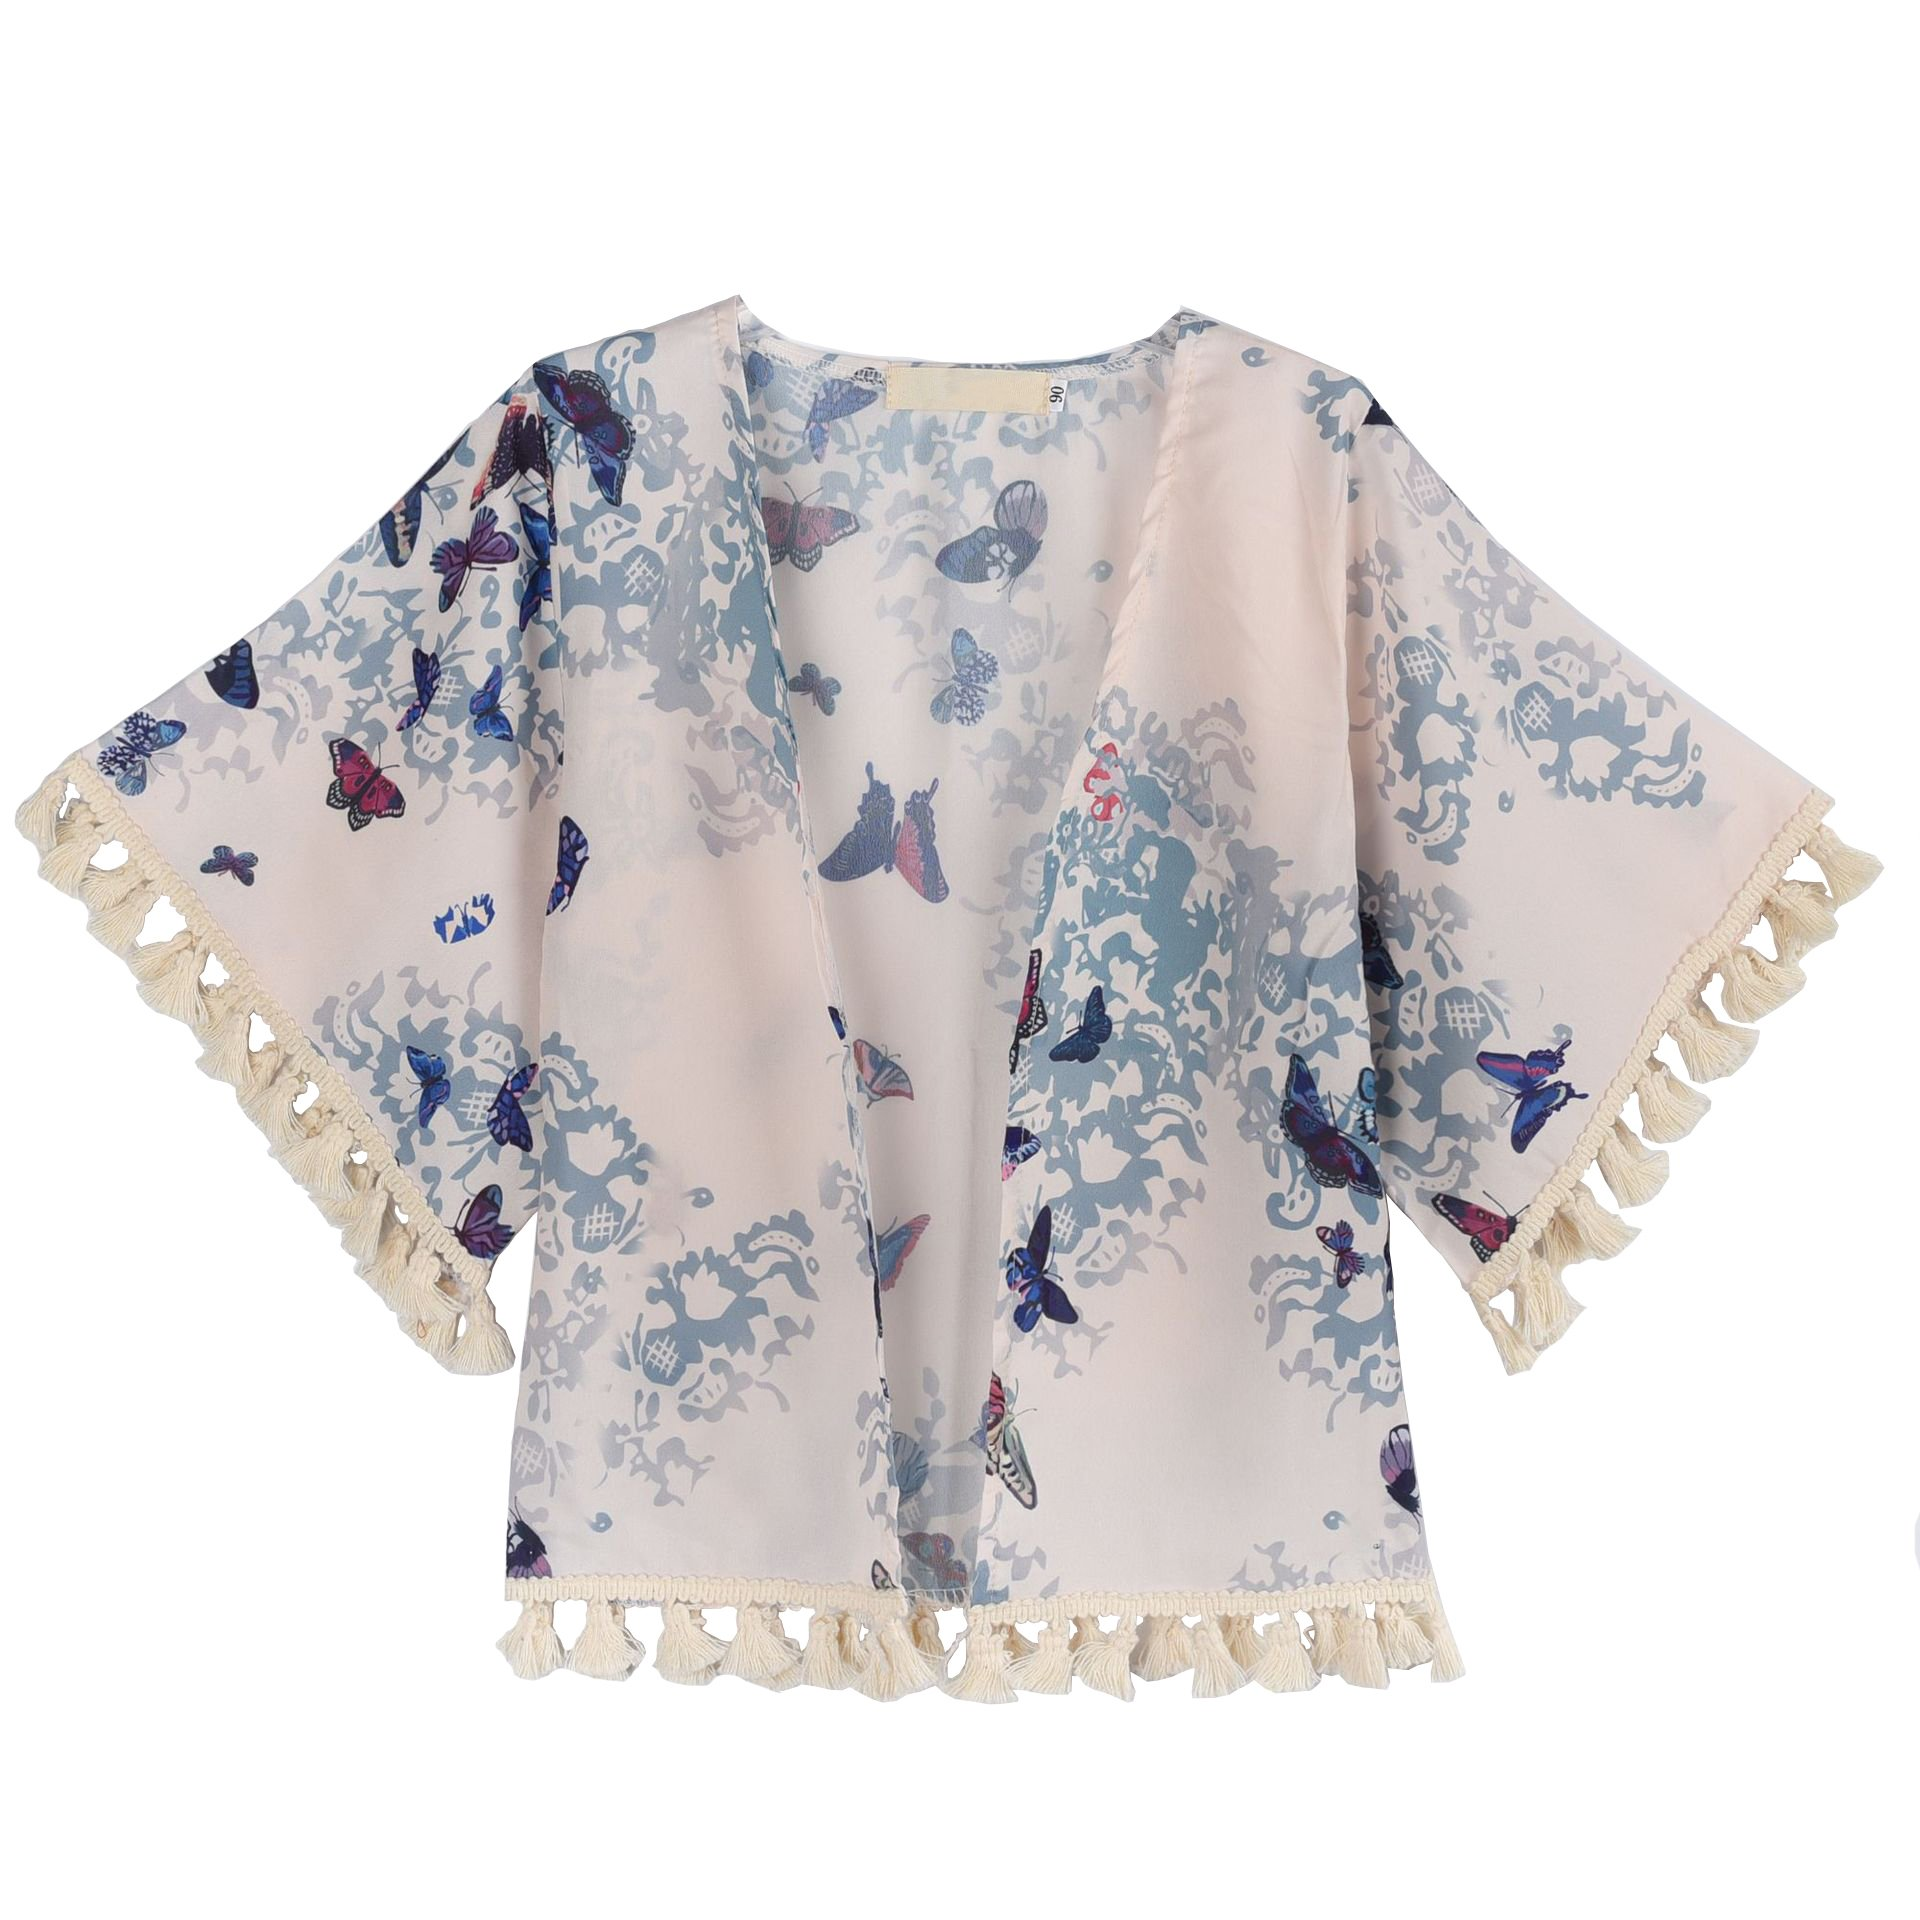 Summer Baby Tassel Chiffon Cardigan Outfits Toddler Kids Girl Kimonos Coats